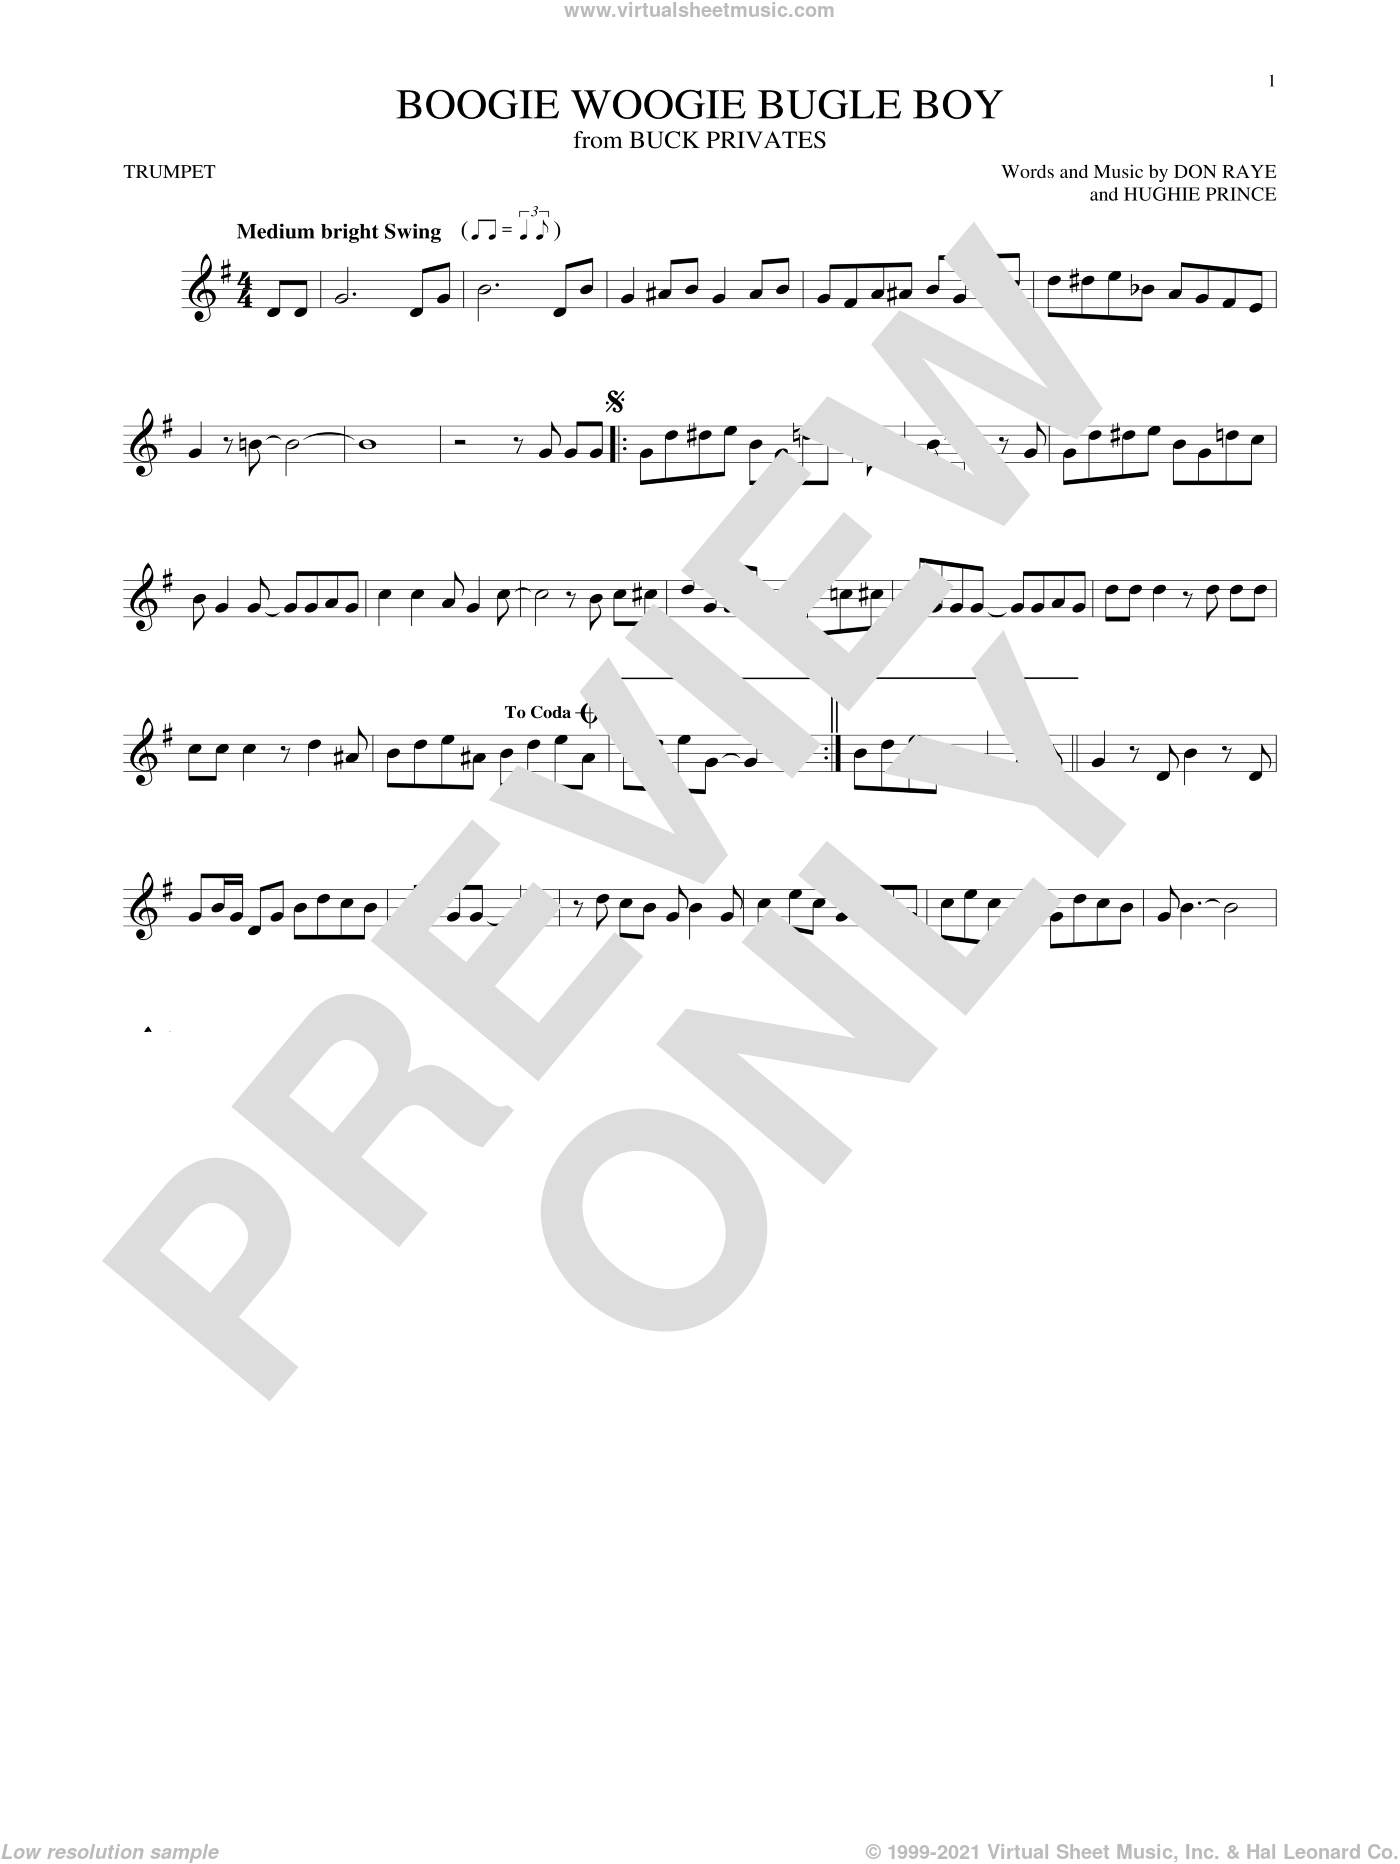 Boogie Woogie Bugle Boy sheet music for trumpet solo by Hughie Prince, Bette Midler and Don Raye. Score Image Preview.